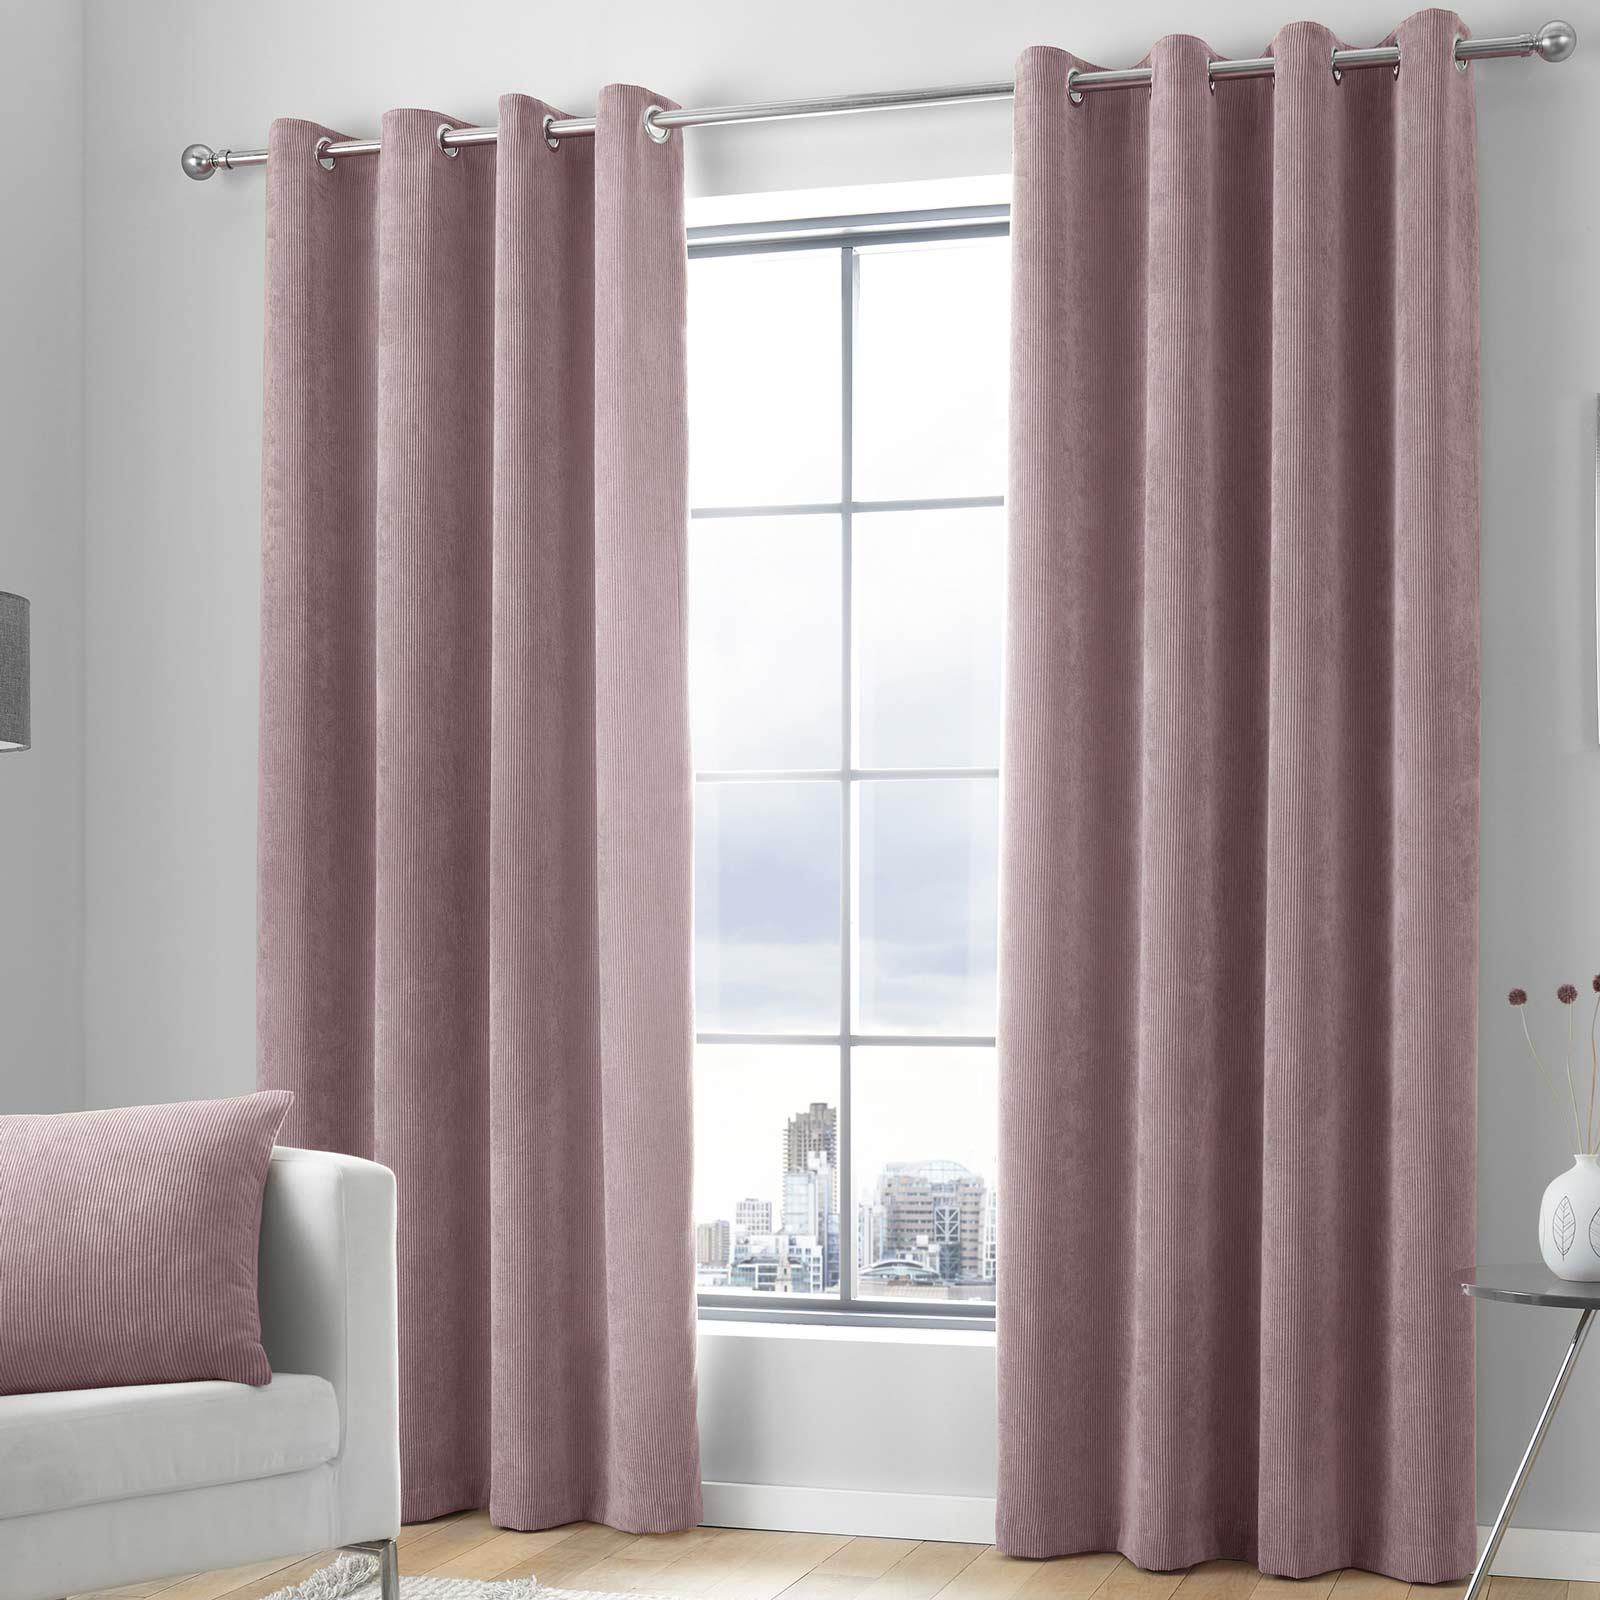 Pink Eyelet Curtains Blush Plain Cord Chenille Ready Made Lined Ring Top Pairs